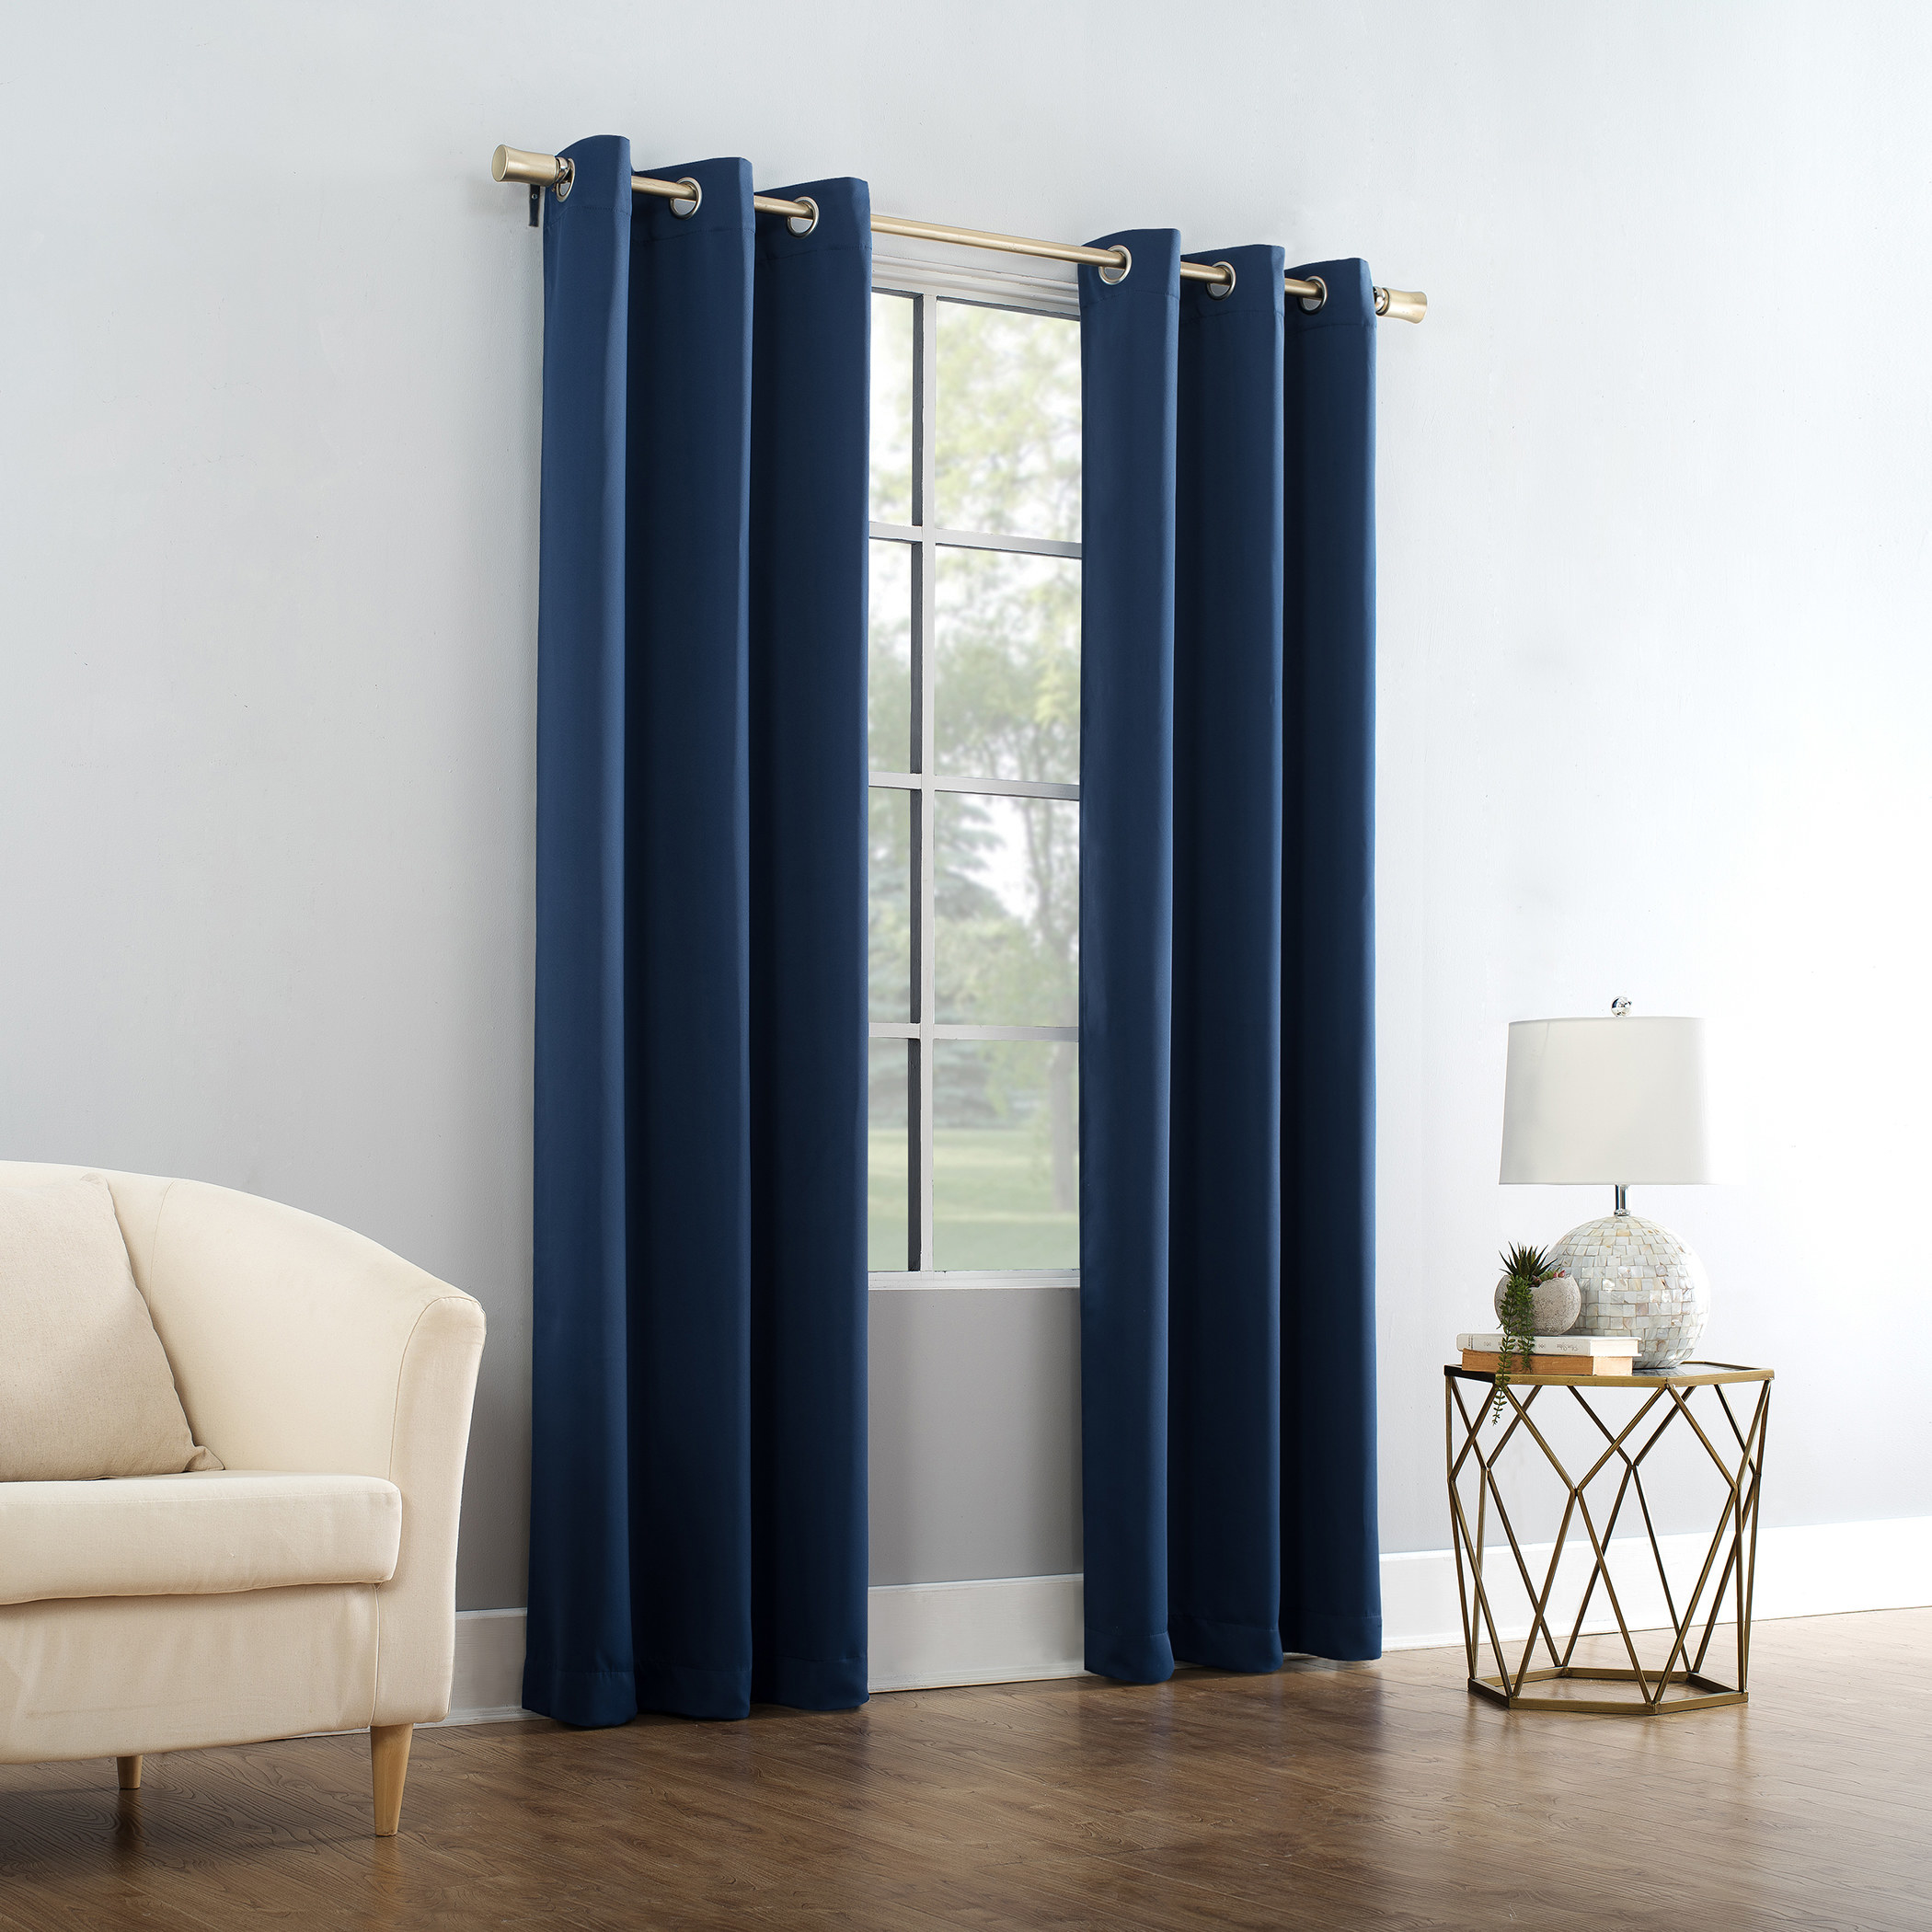 The blue curtain panel